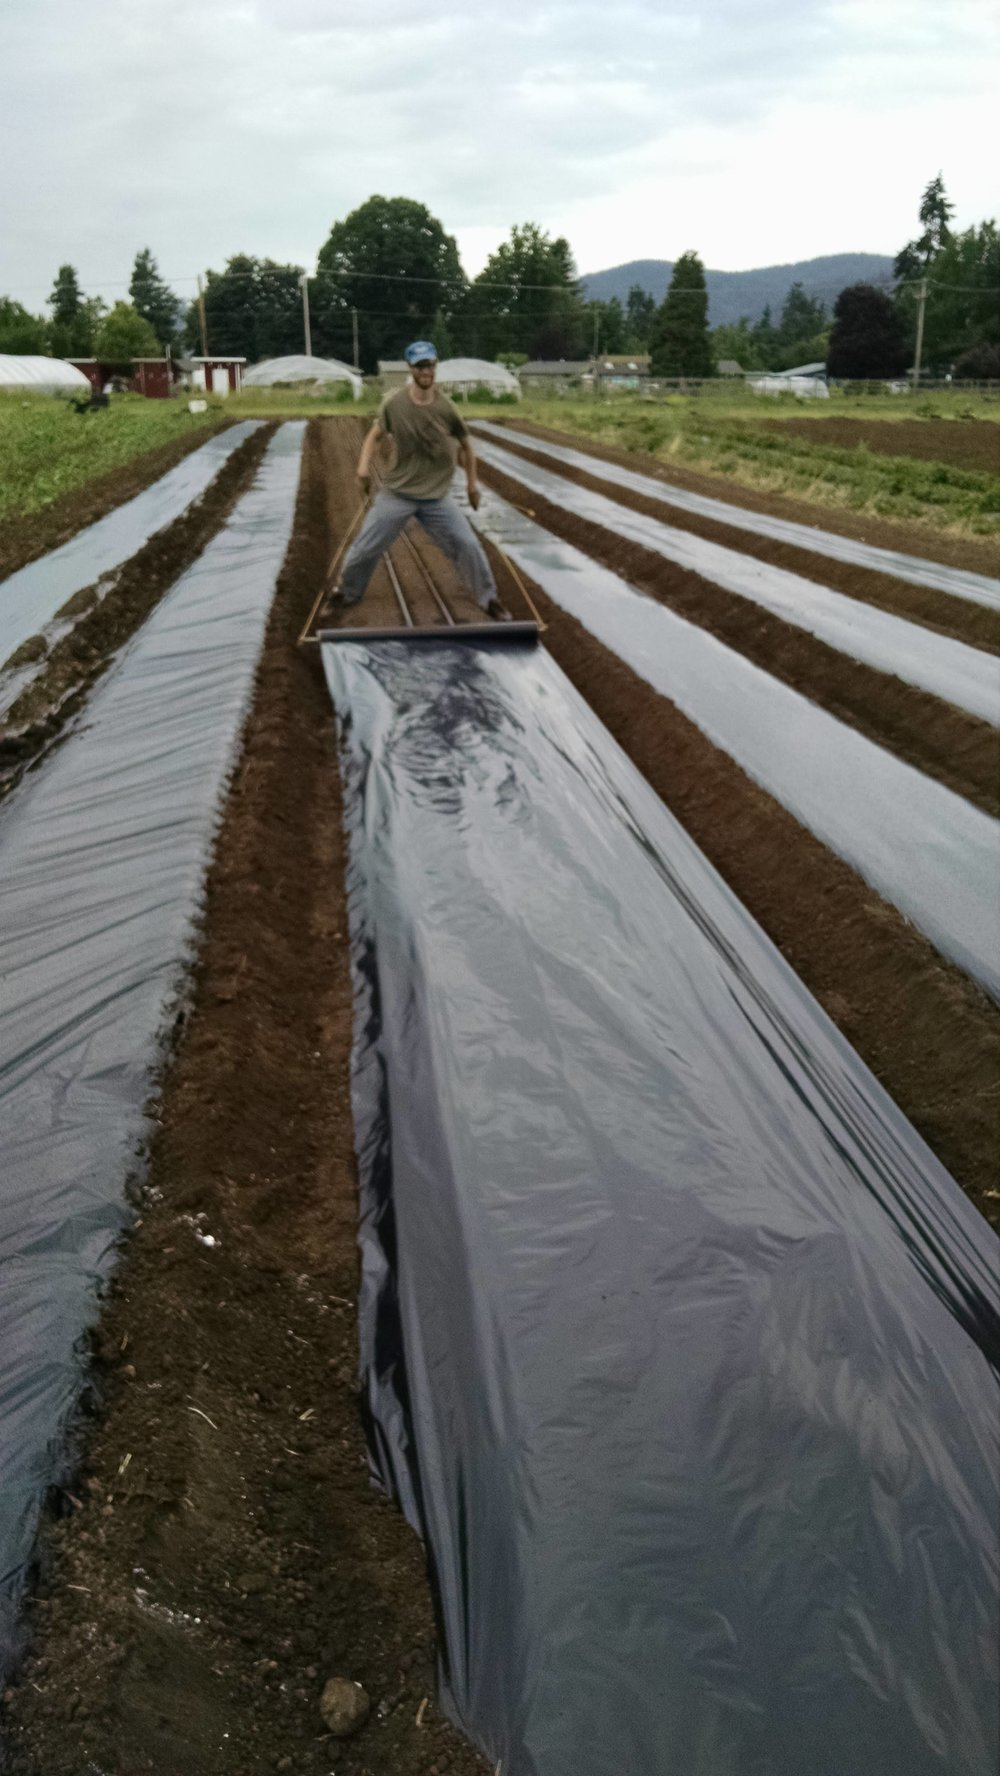 Covering tomato beds with plastic